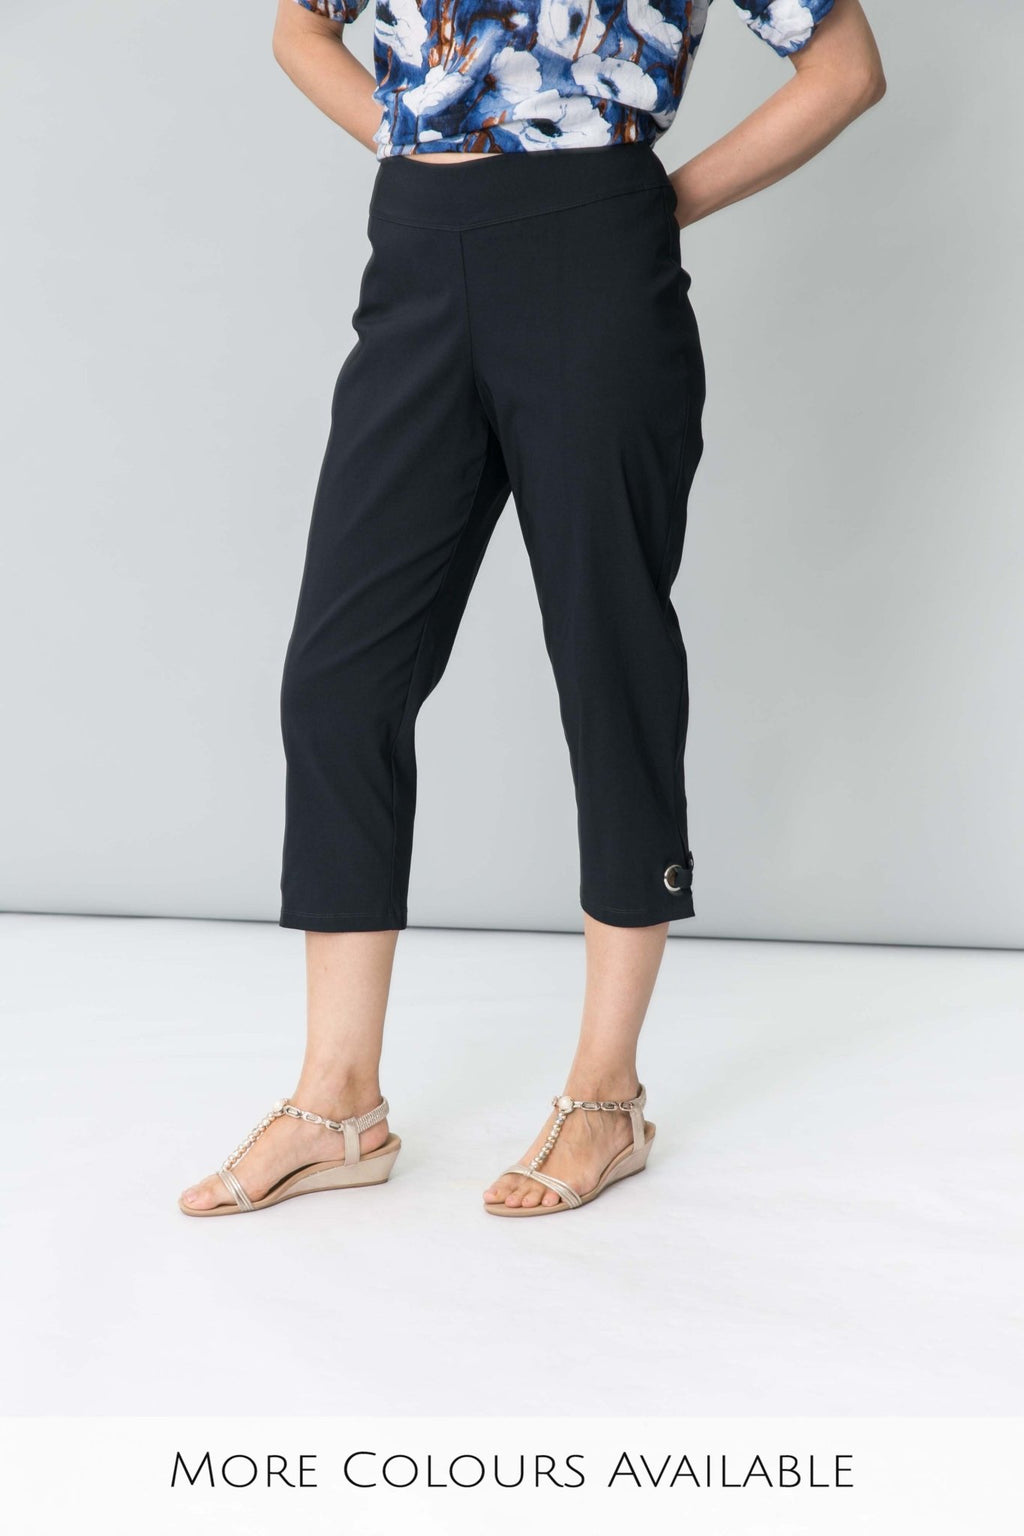 PRAIRIE PANT - CSHCCP22765 in Navy - Ebony Boutique NZ